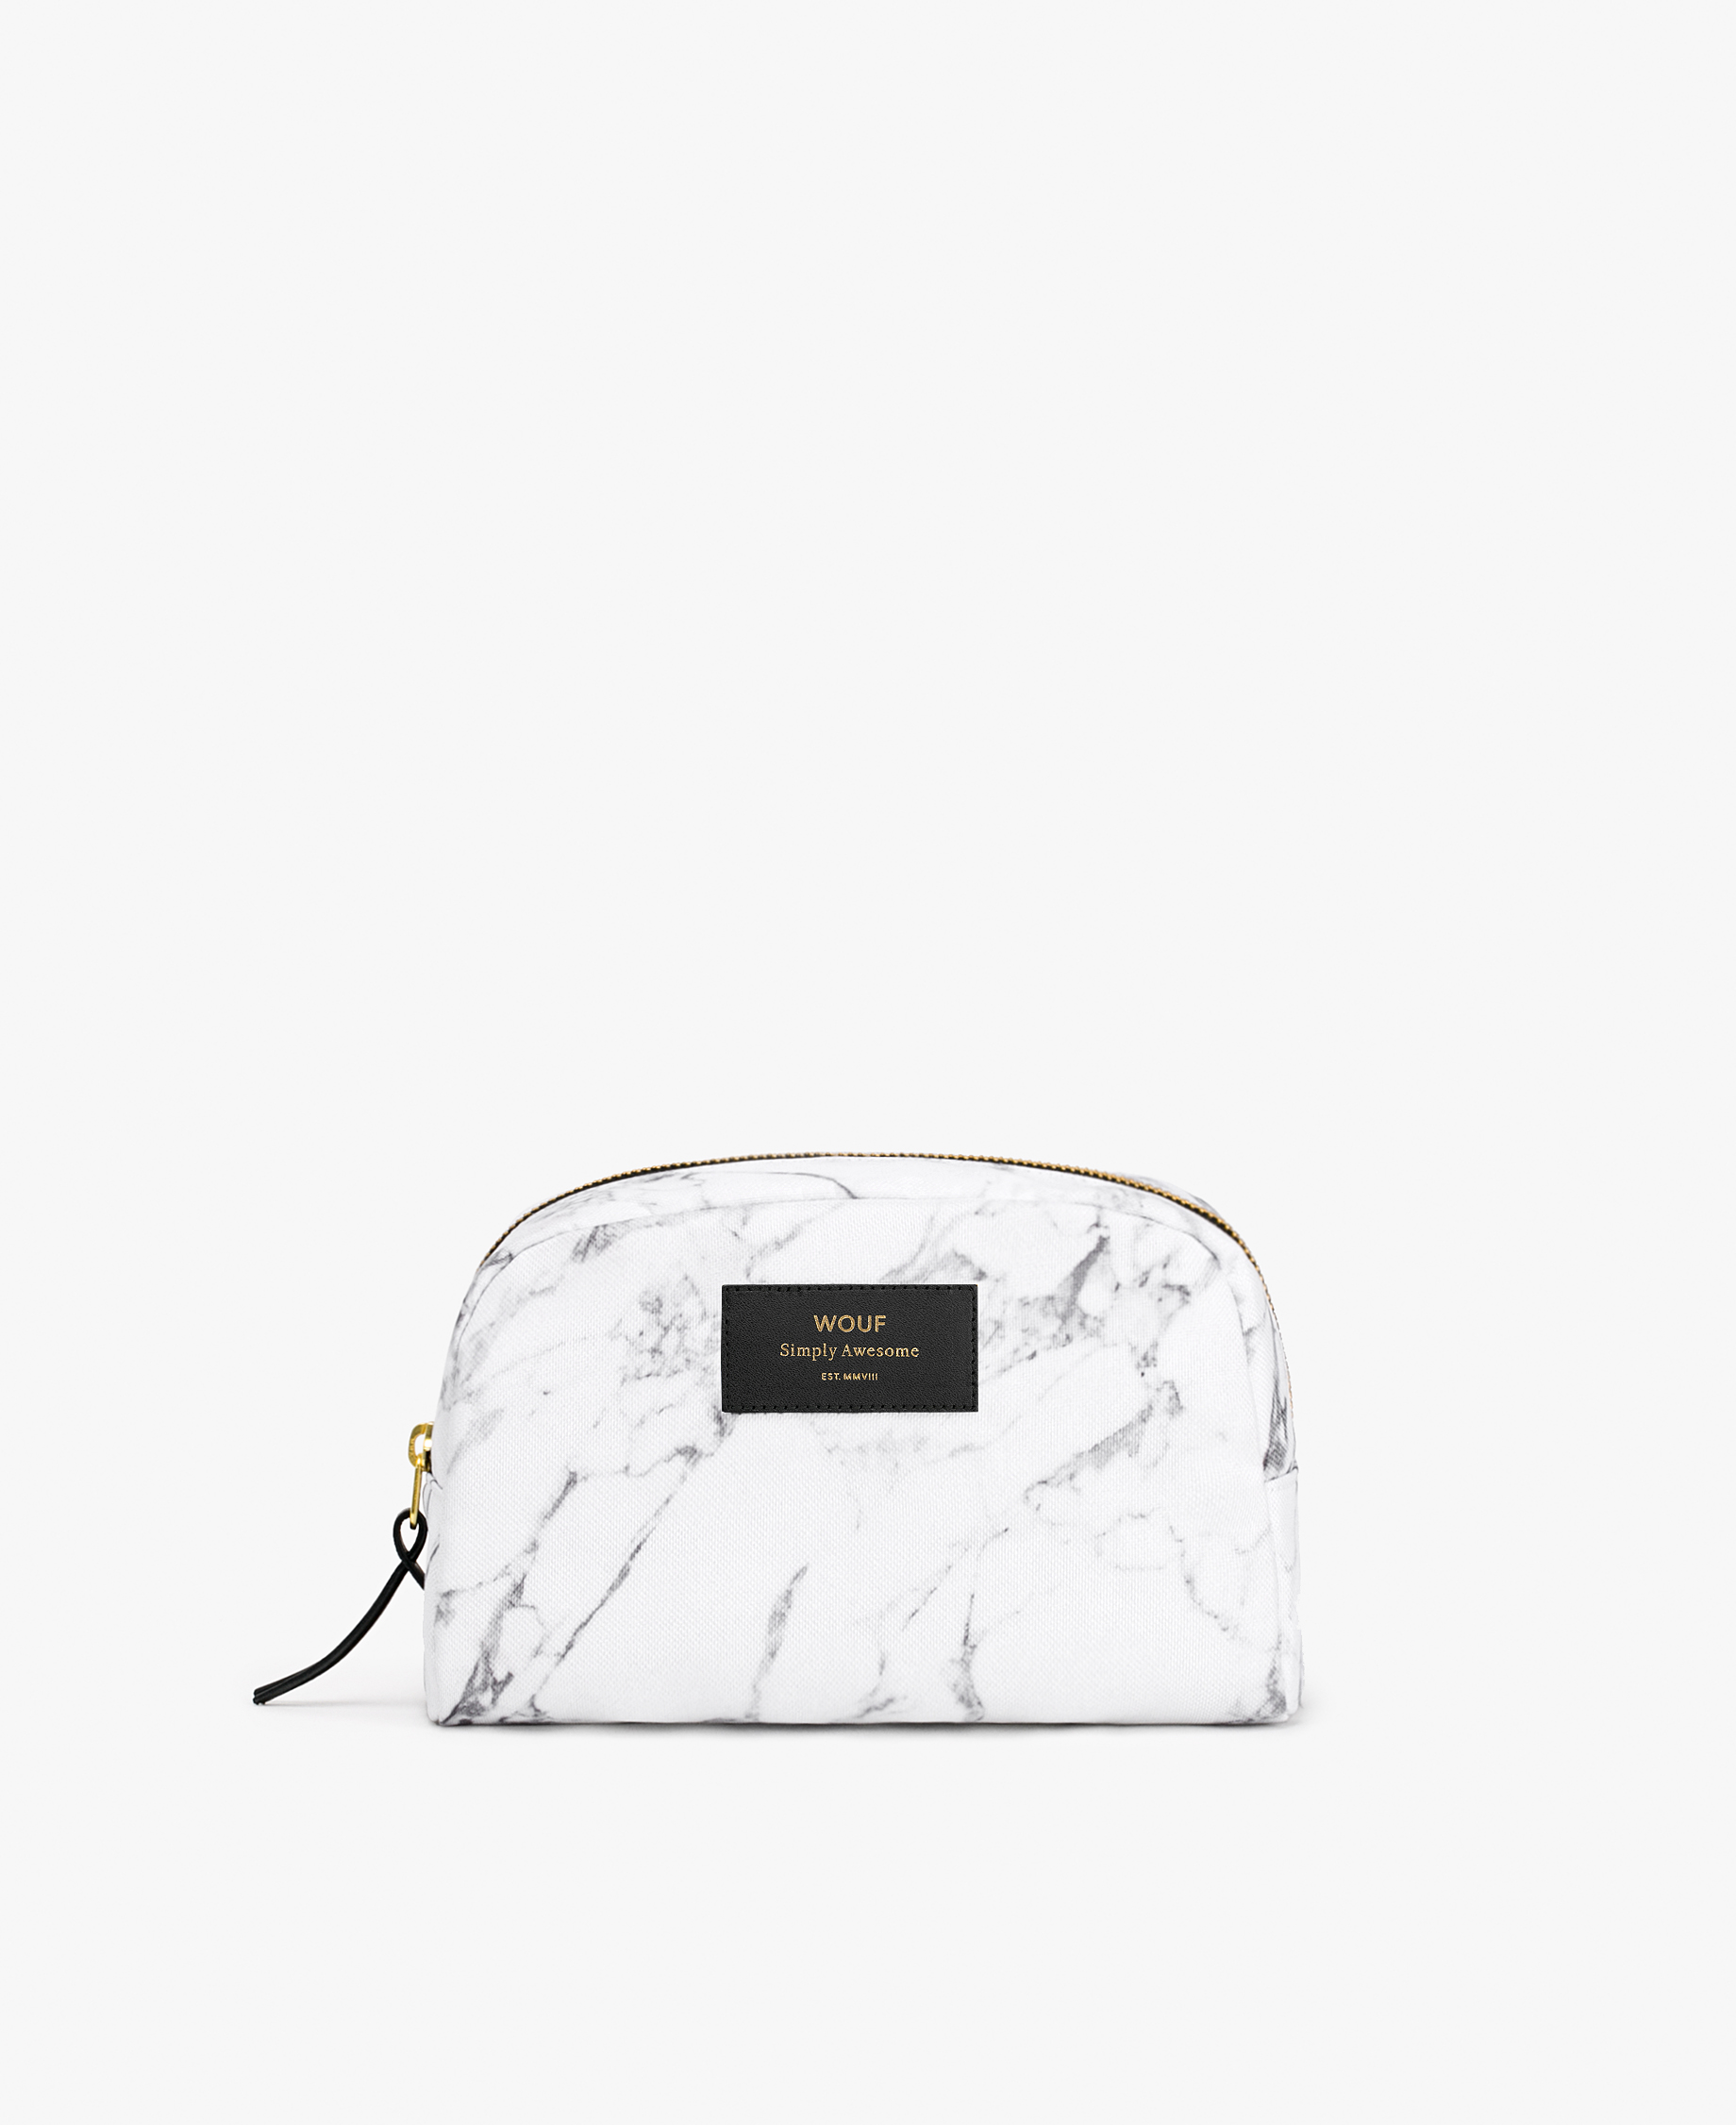 woman's toiletry bag in white